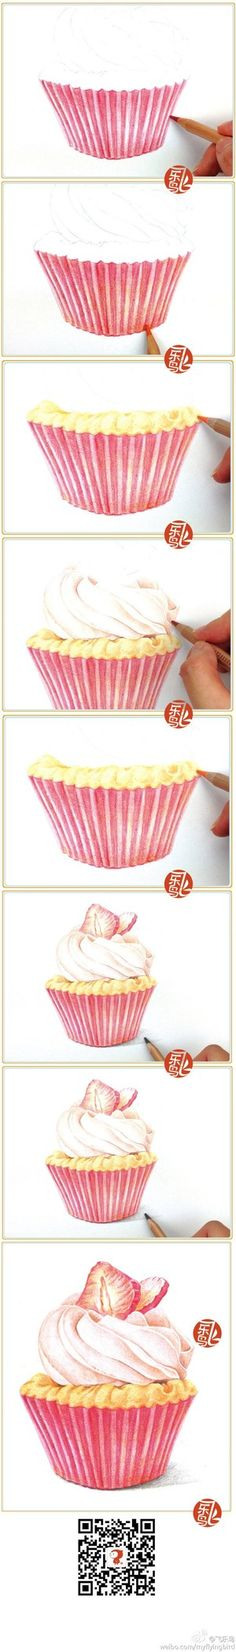 How to draw a cupcake!